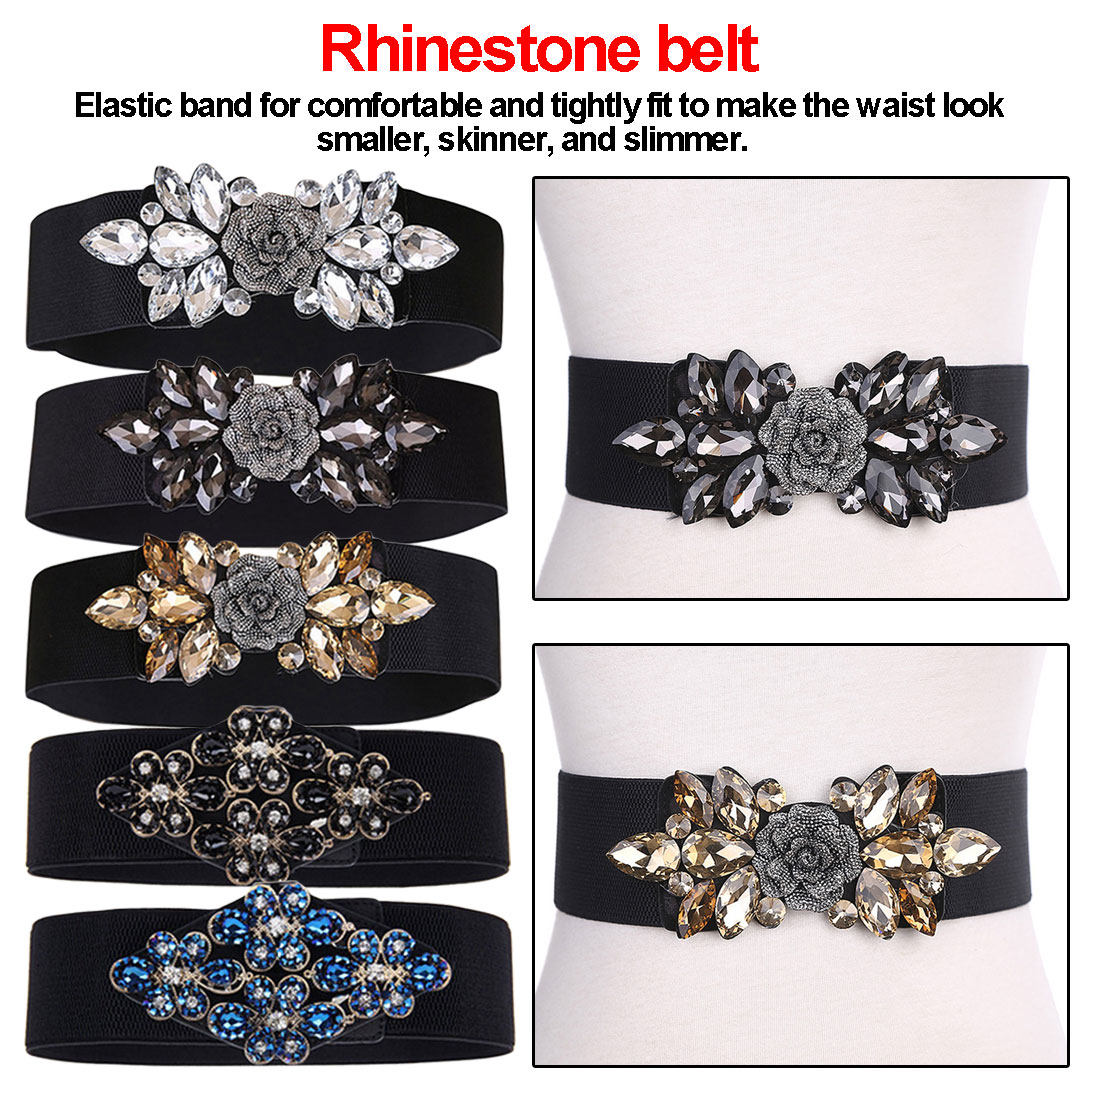 Luxury Brand Wide Floral Rhinestone Belt Buckles Stretchy Elastic Waist Belt Fashion Design Waistband For Ladies Women Belts